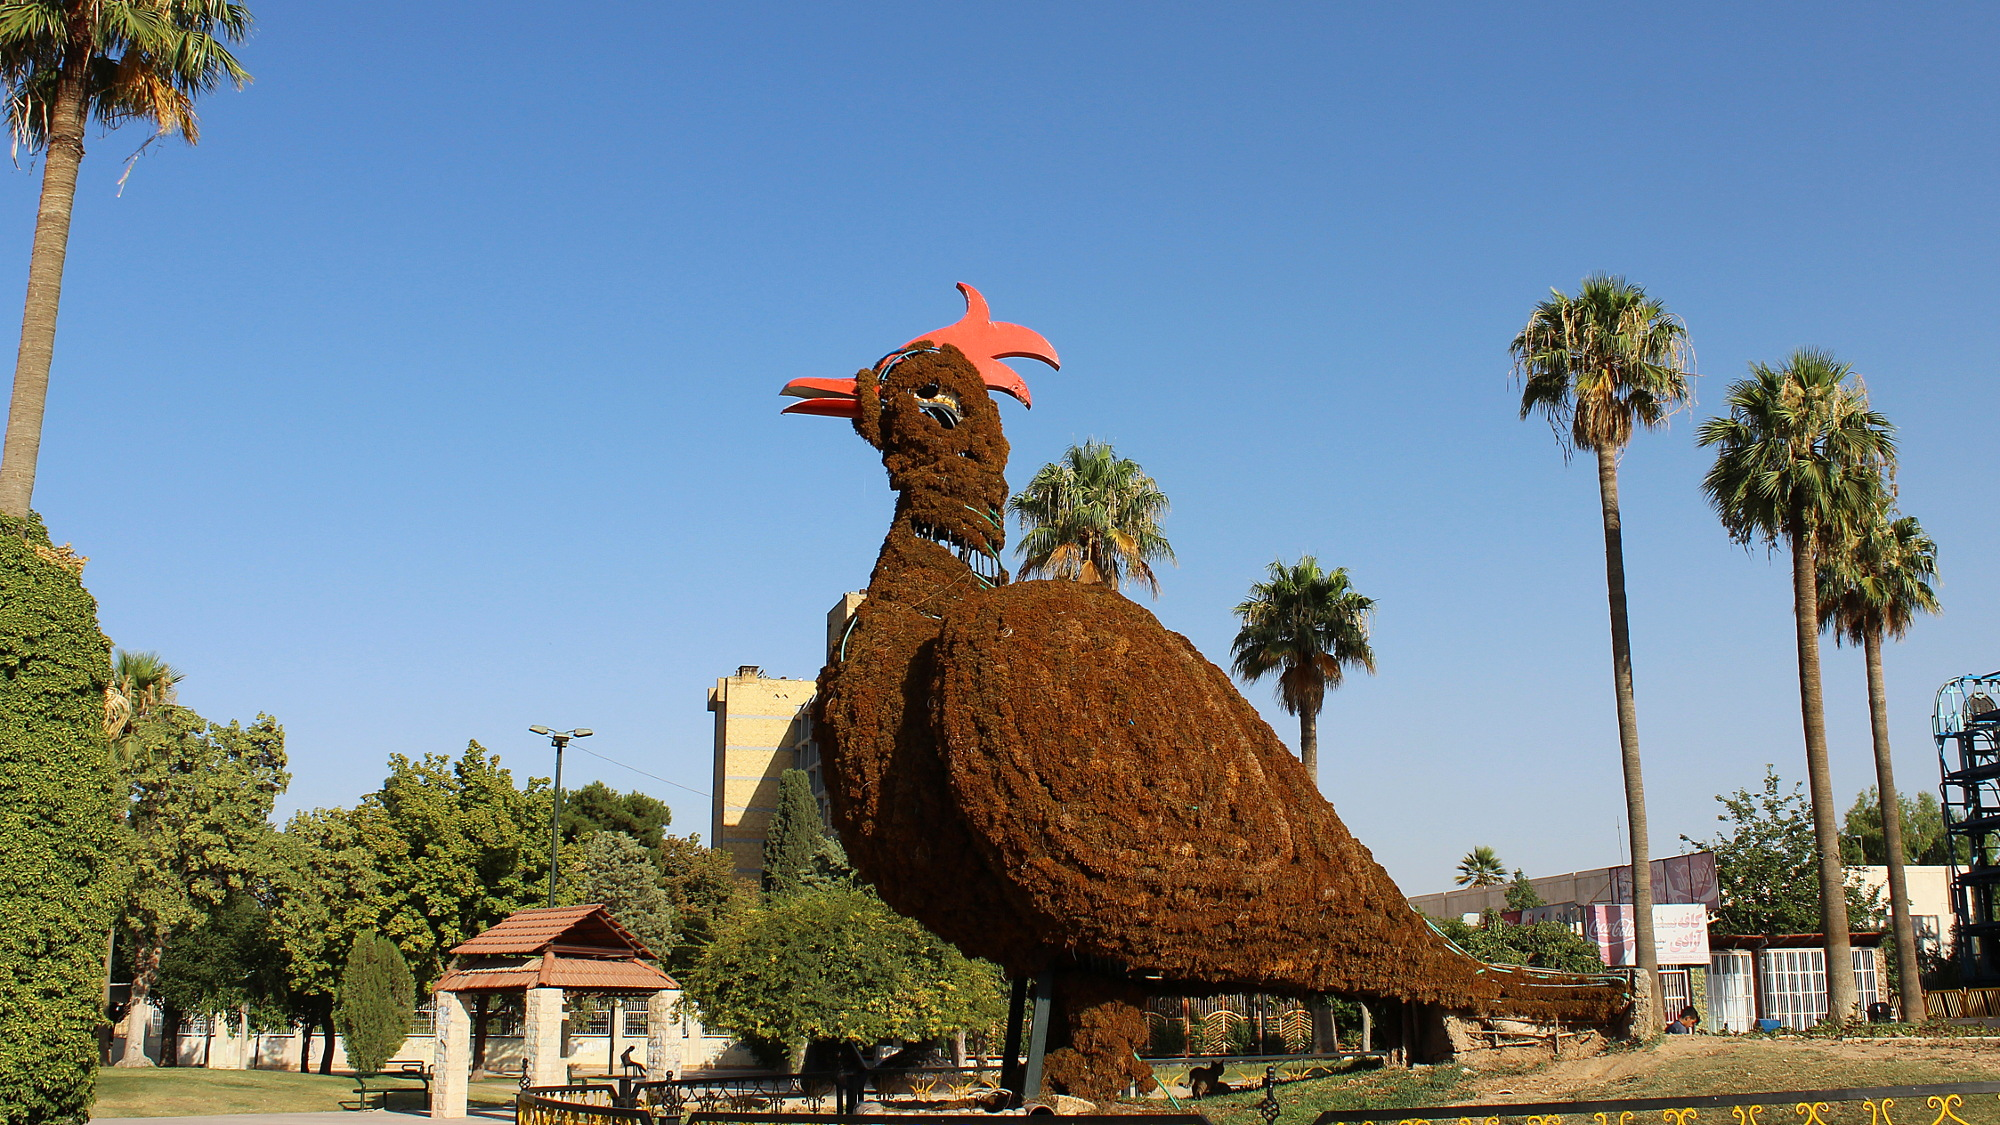 A giant chicken statue in a park in Shiraz.